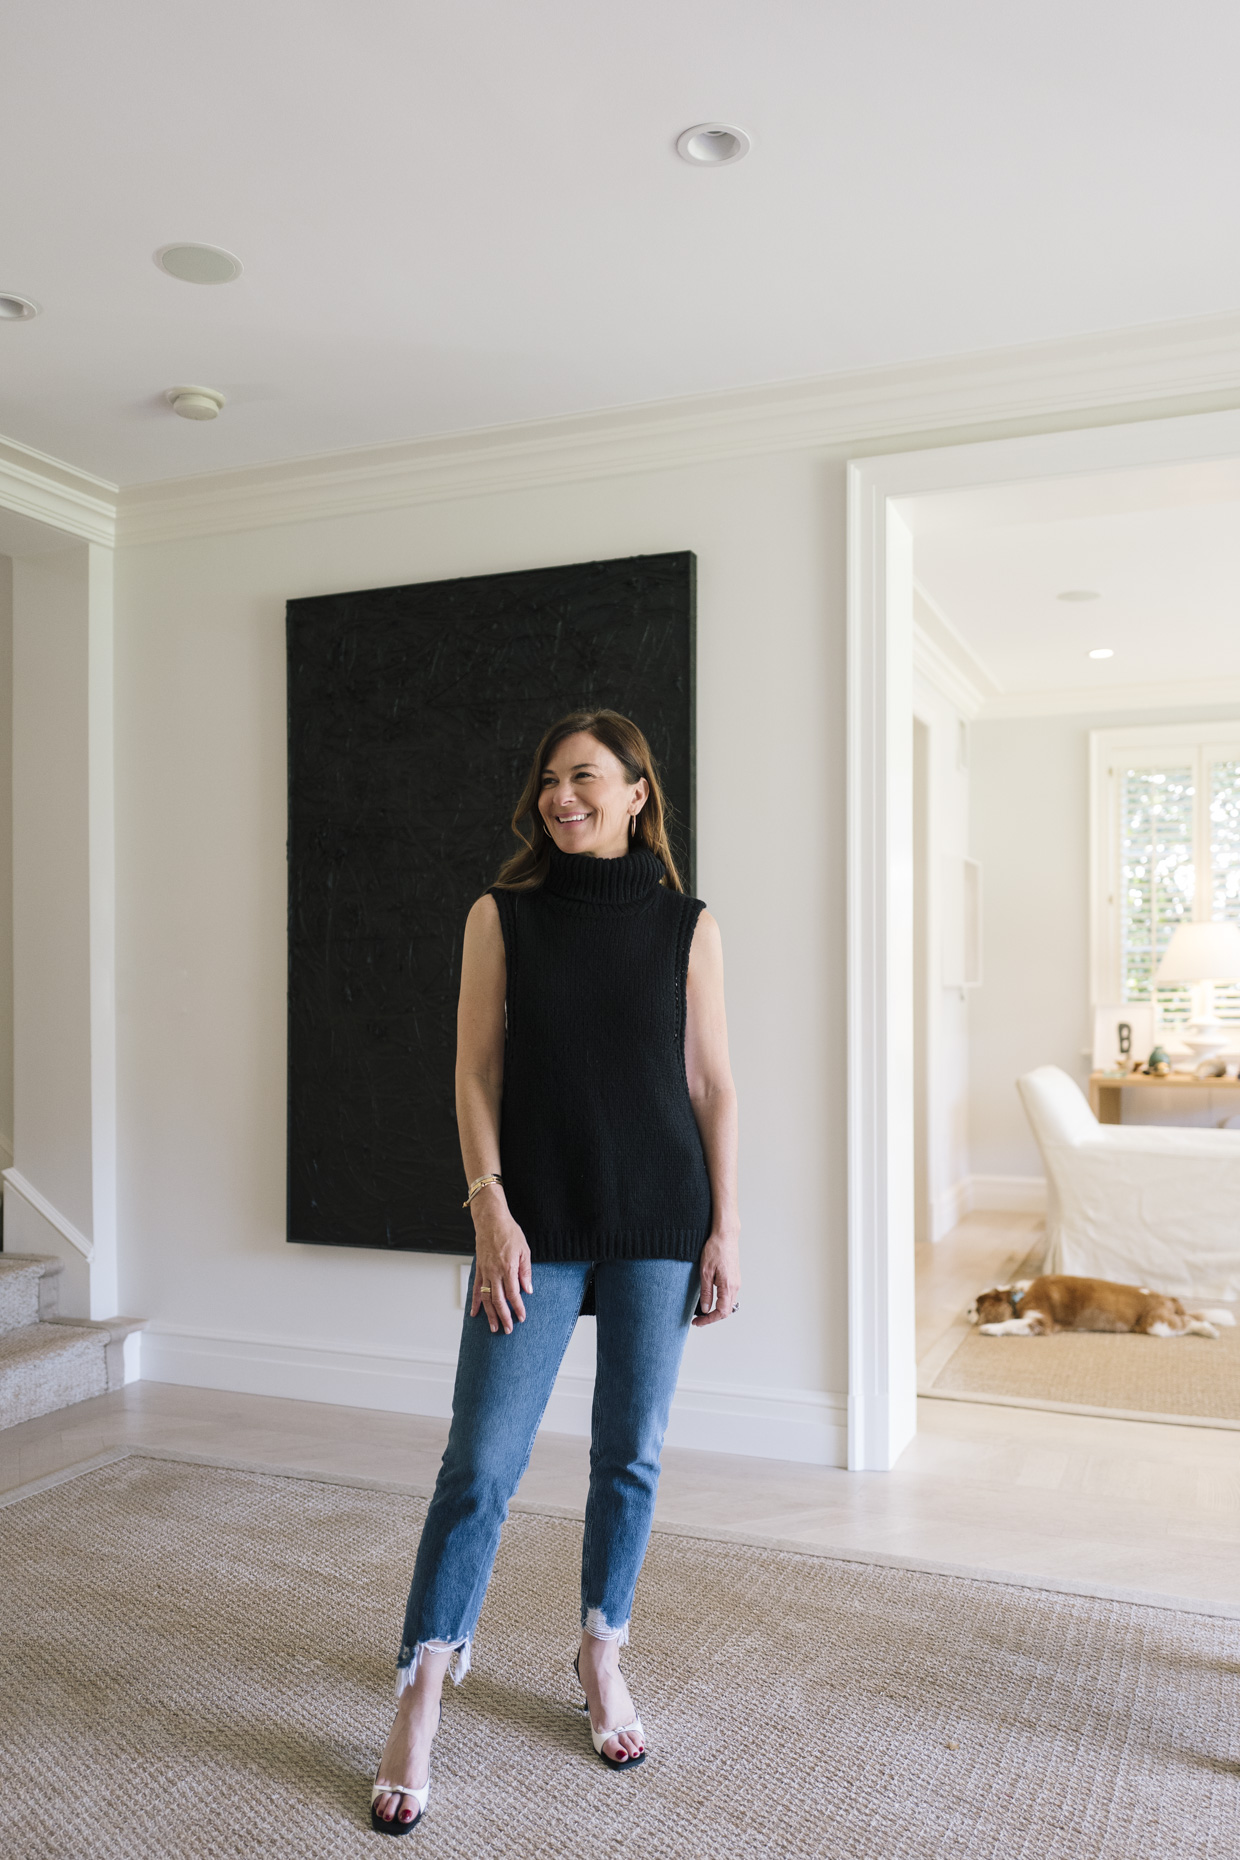 Sarah Harrelson in front of a piece by Rashid Johnson. Courtesy of Sarah Harrelson.